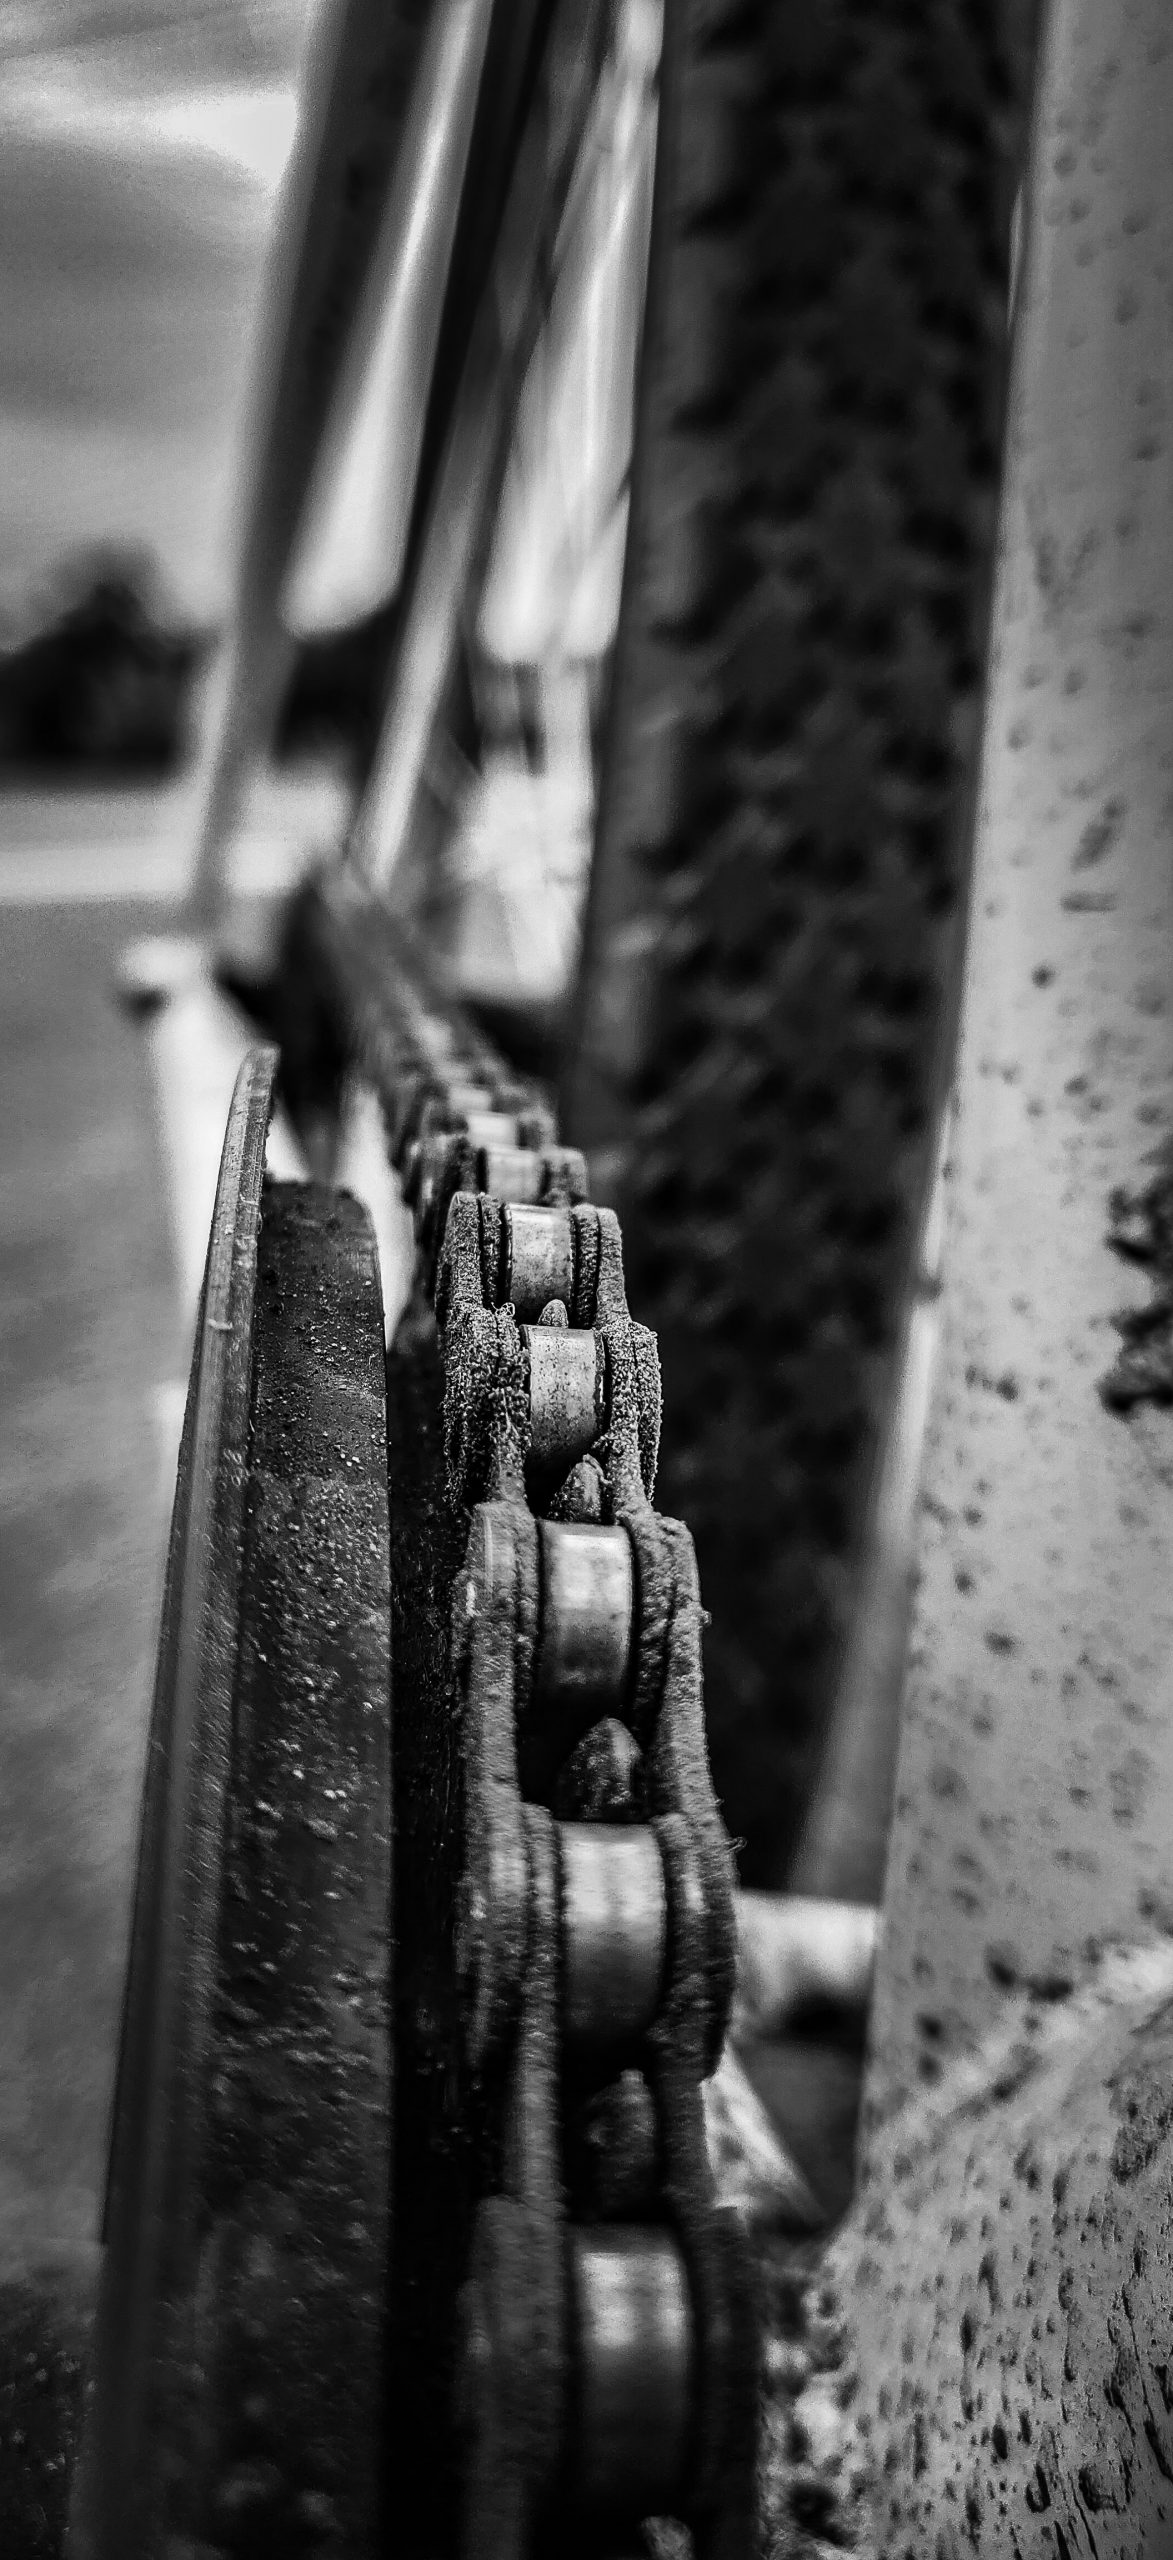 A bicycle chain